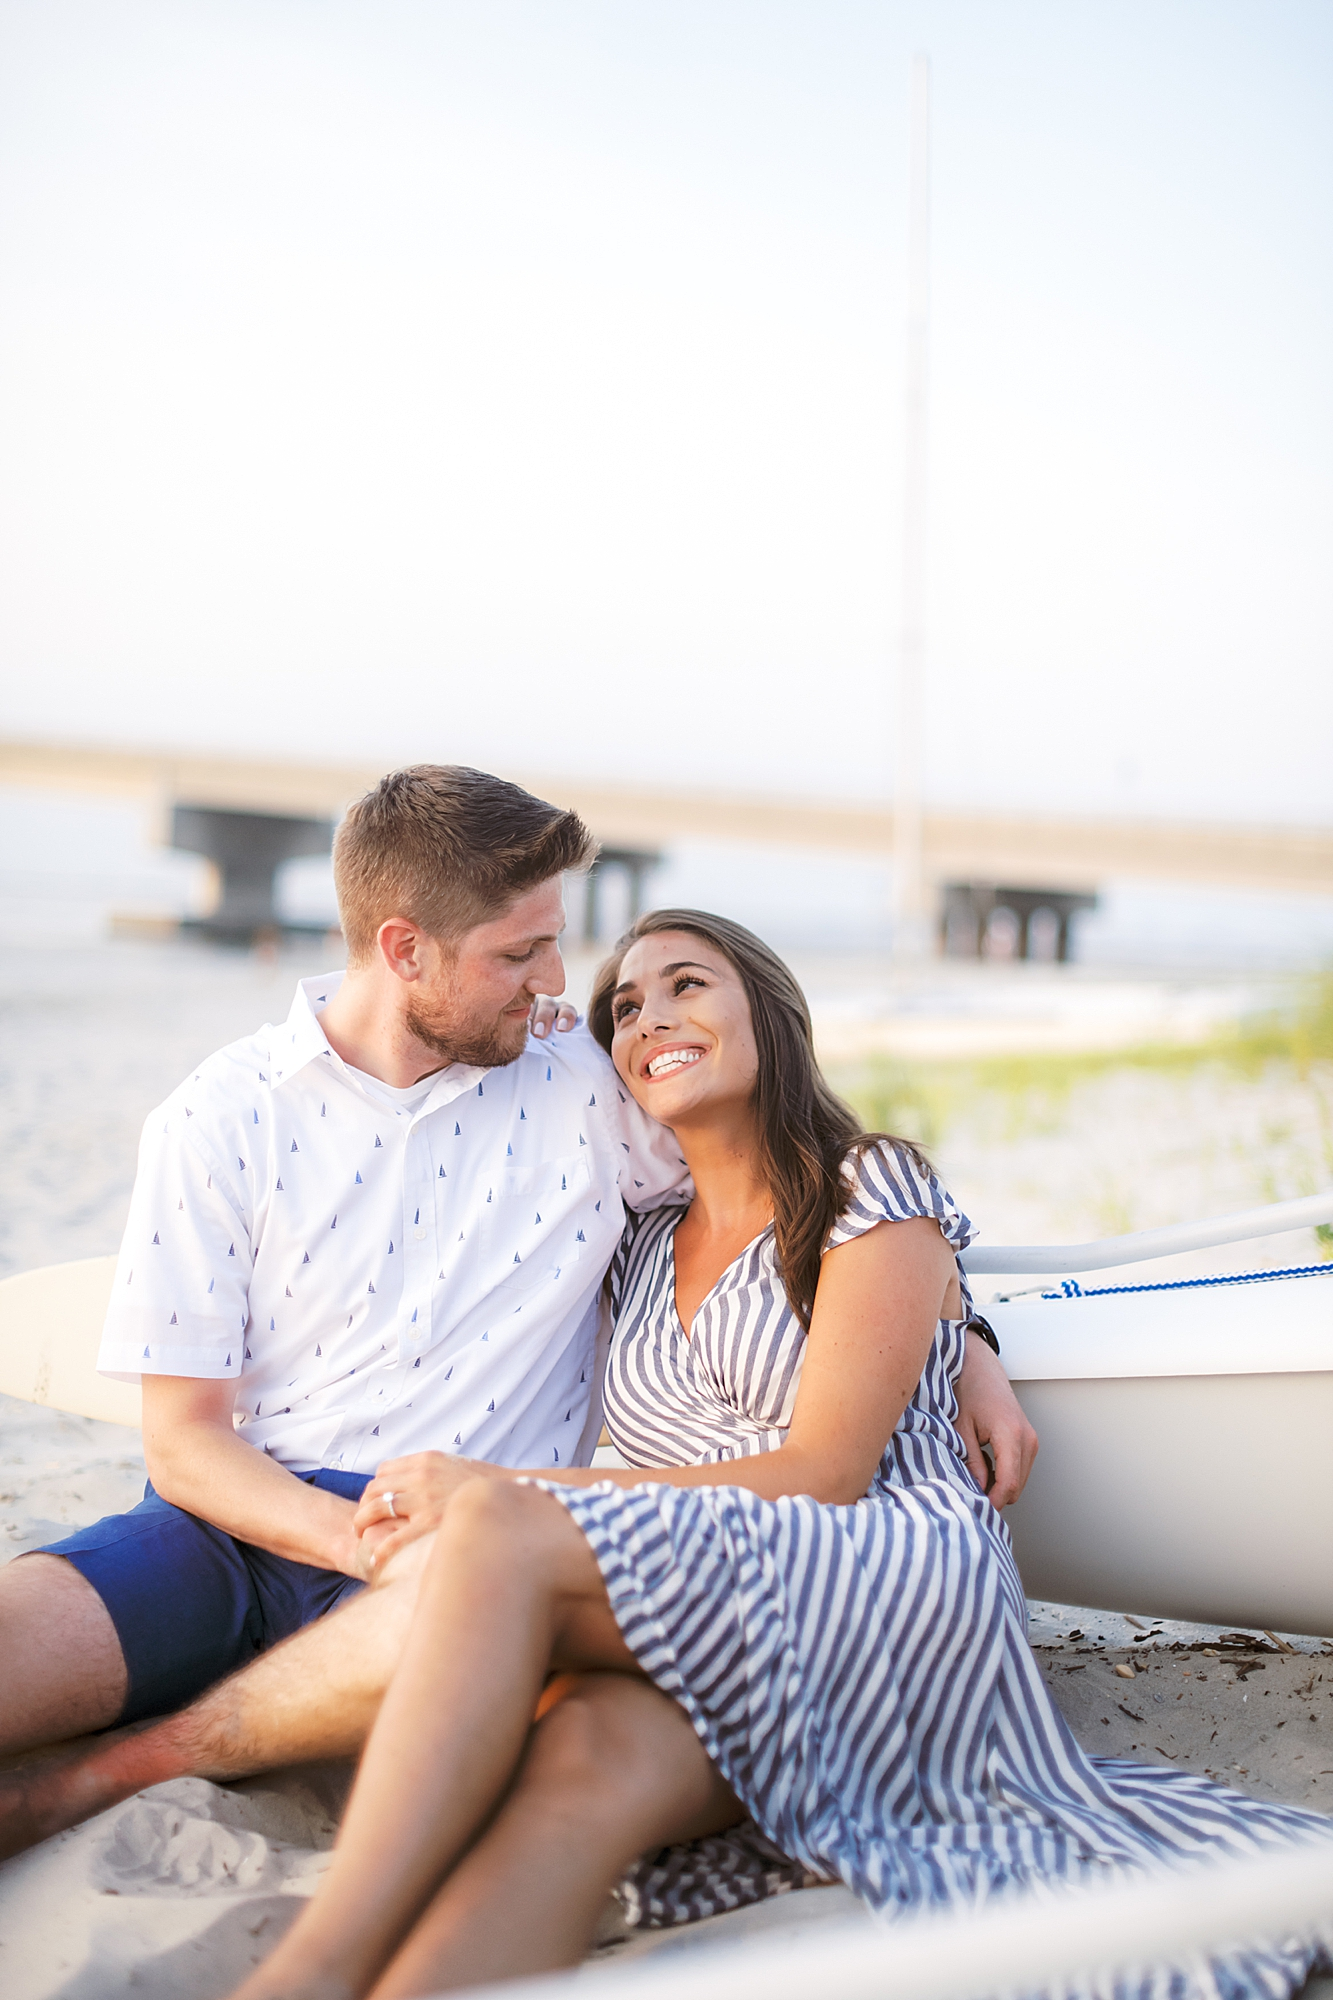 Engagement Session Outfit Inspiration by Magdalena Studios 0009